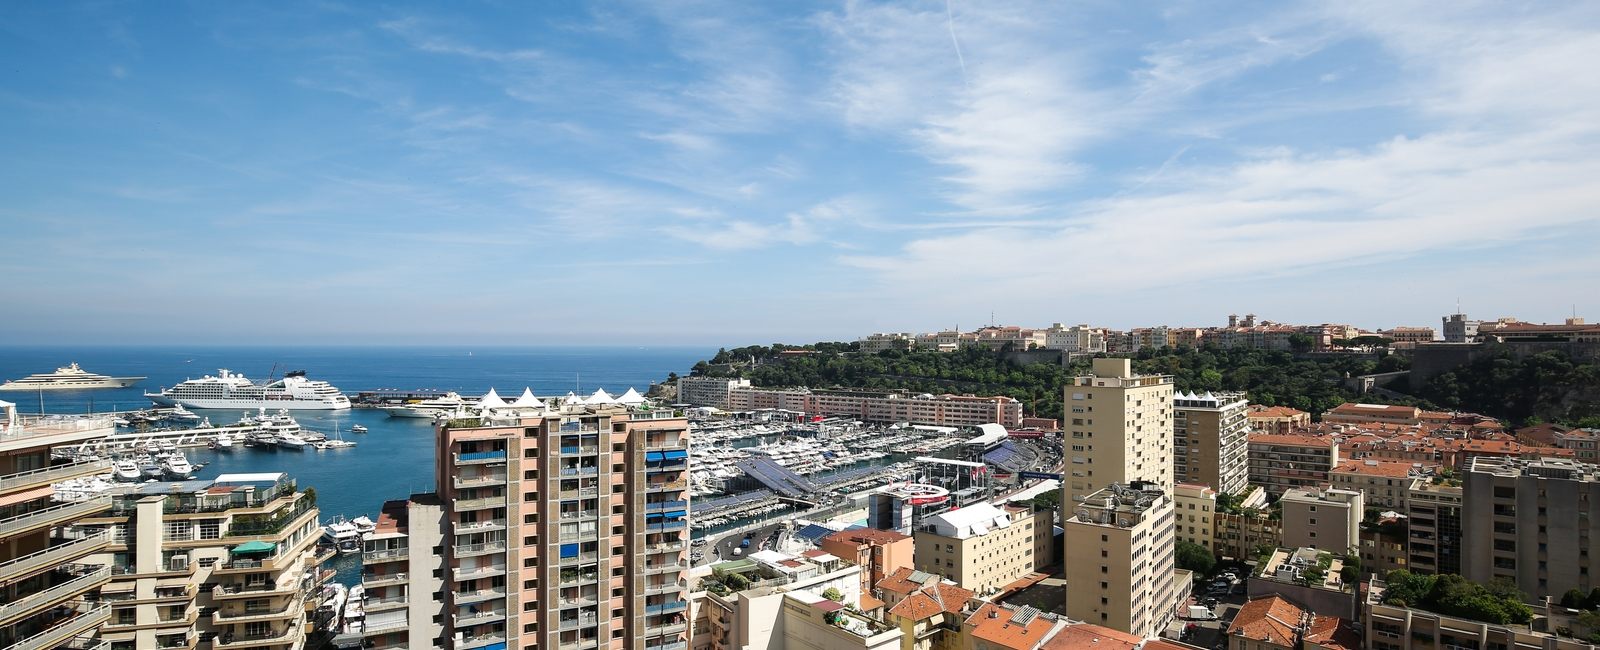 La Costa Properties Monaco : Overlooking the port of Monaco